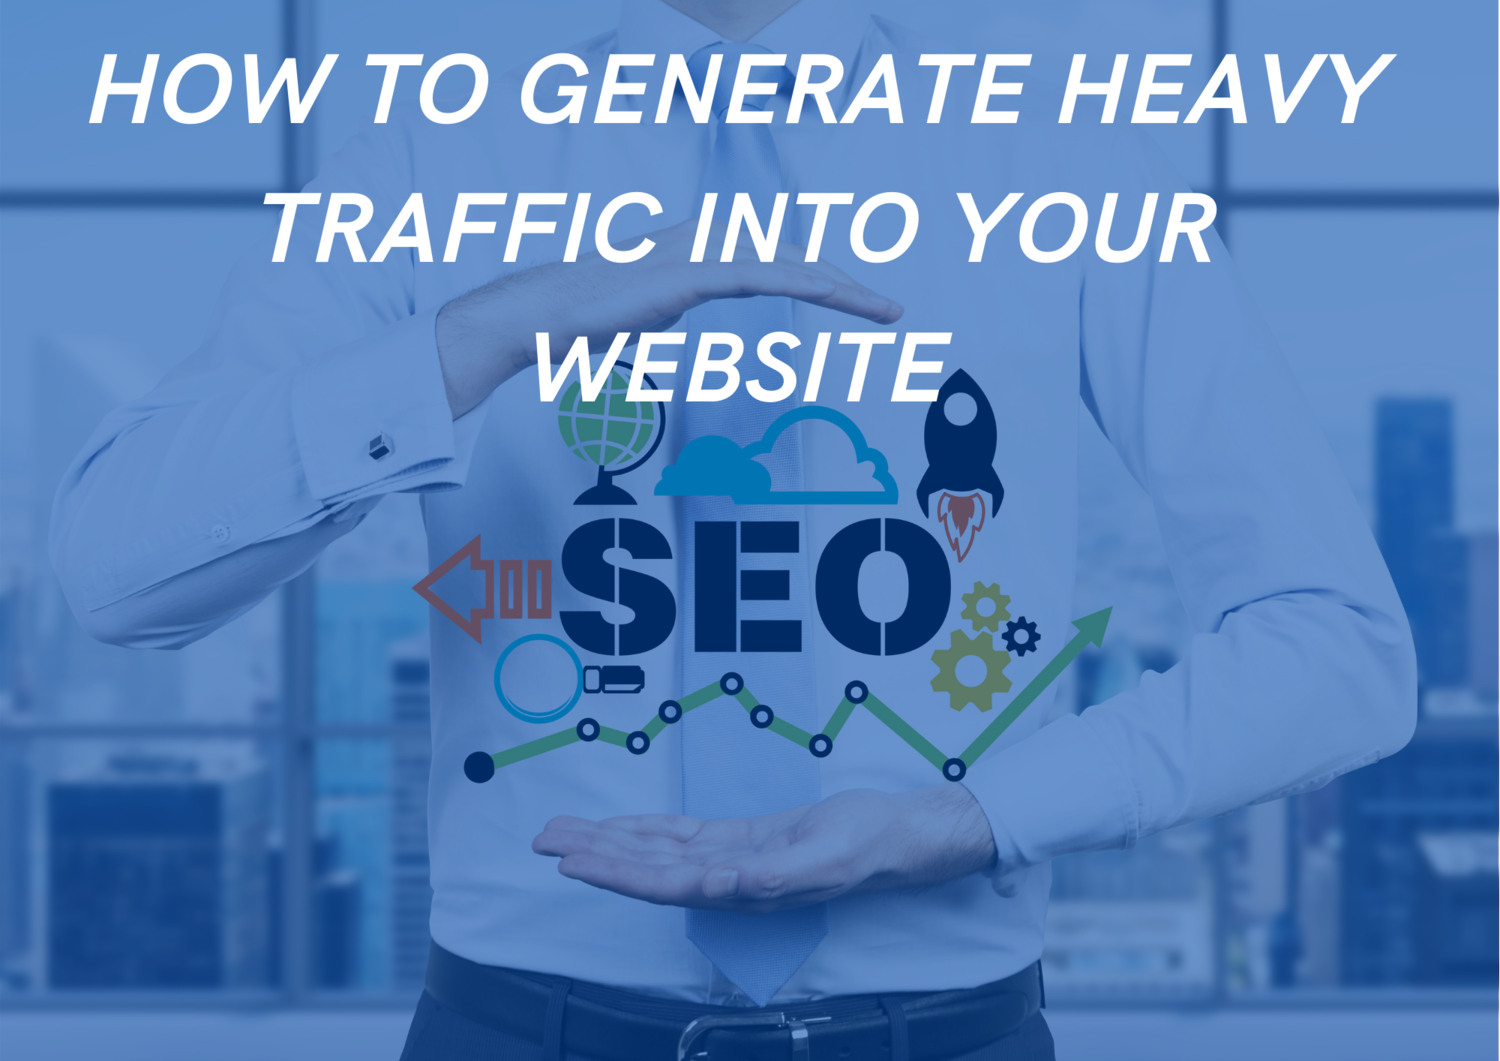 How Can I Drive More Traffic to My Website or Blog?